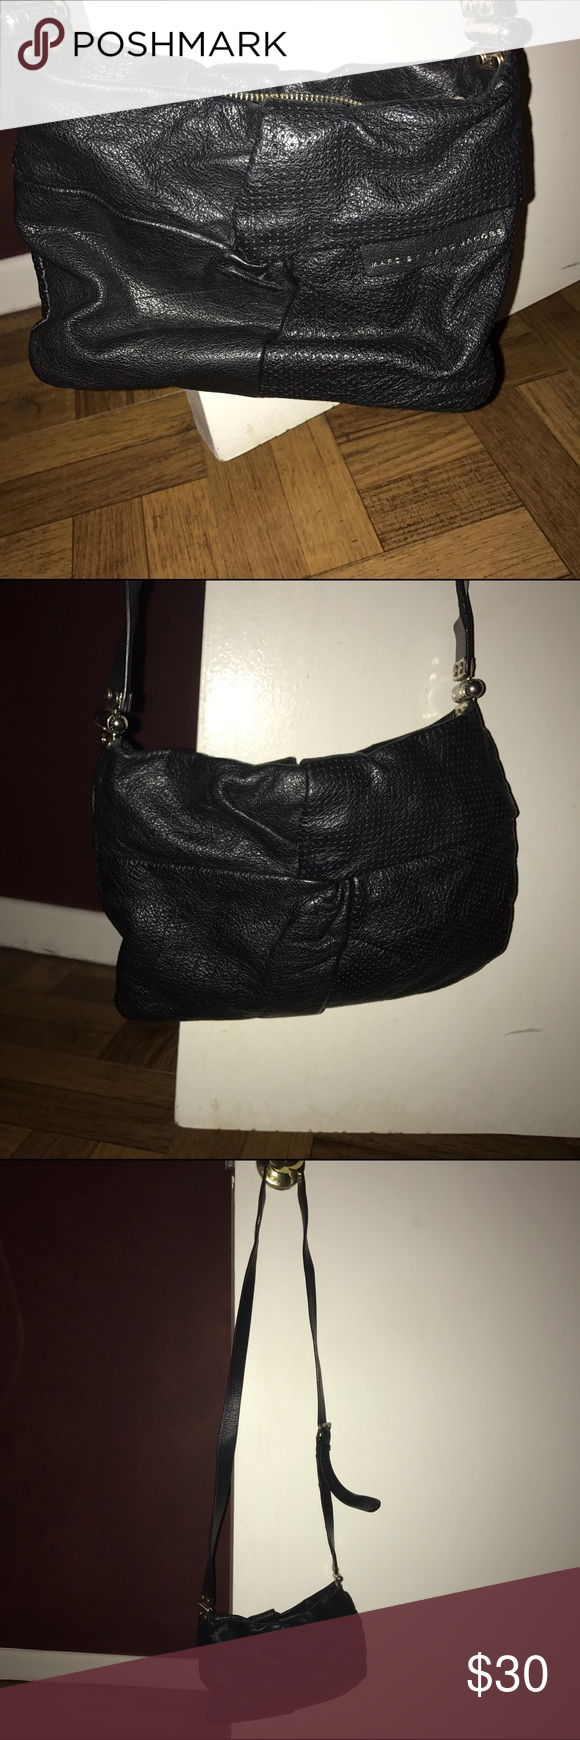 Marc Jacobs crossbody black Marc Jacobs crossbody black. Well loved still has some life left. Please note that the strap is coming apart at the shoulder location of the strap. Not noticeable when wearing. Price reflects condition. Marc by Marc Jacobs Bags Crossbody Bags